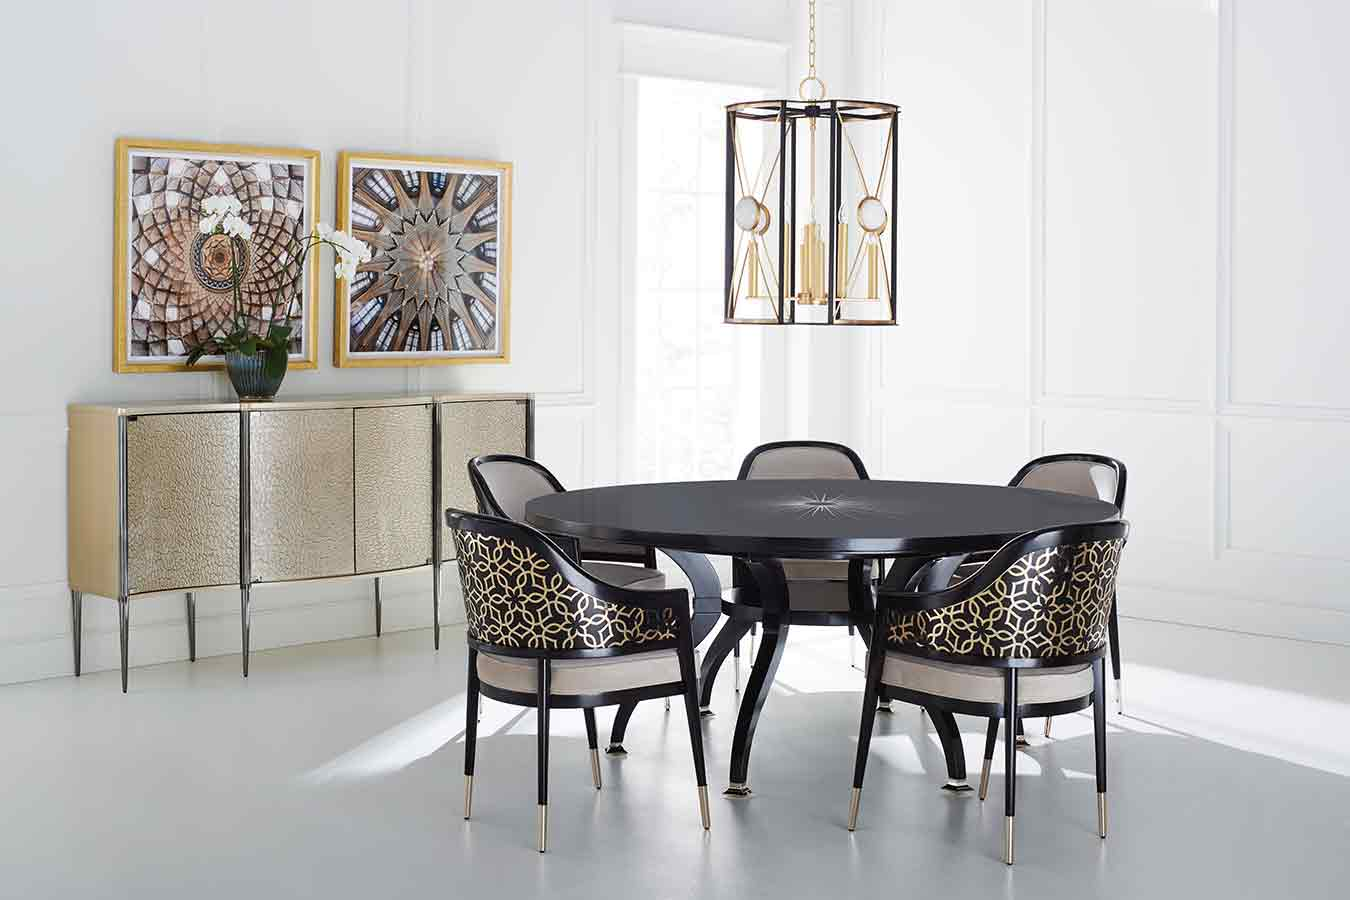 Dining Room | Contemporary Modern Luxury Exclusive Designer Handcrafted Furniture | Sandton Johannesburg